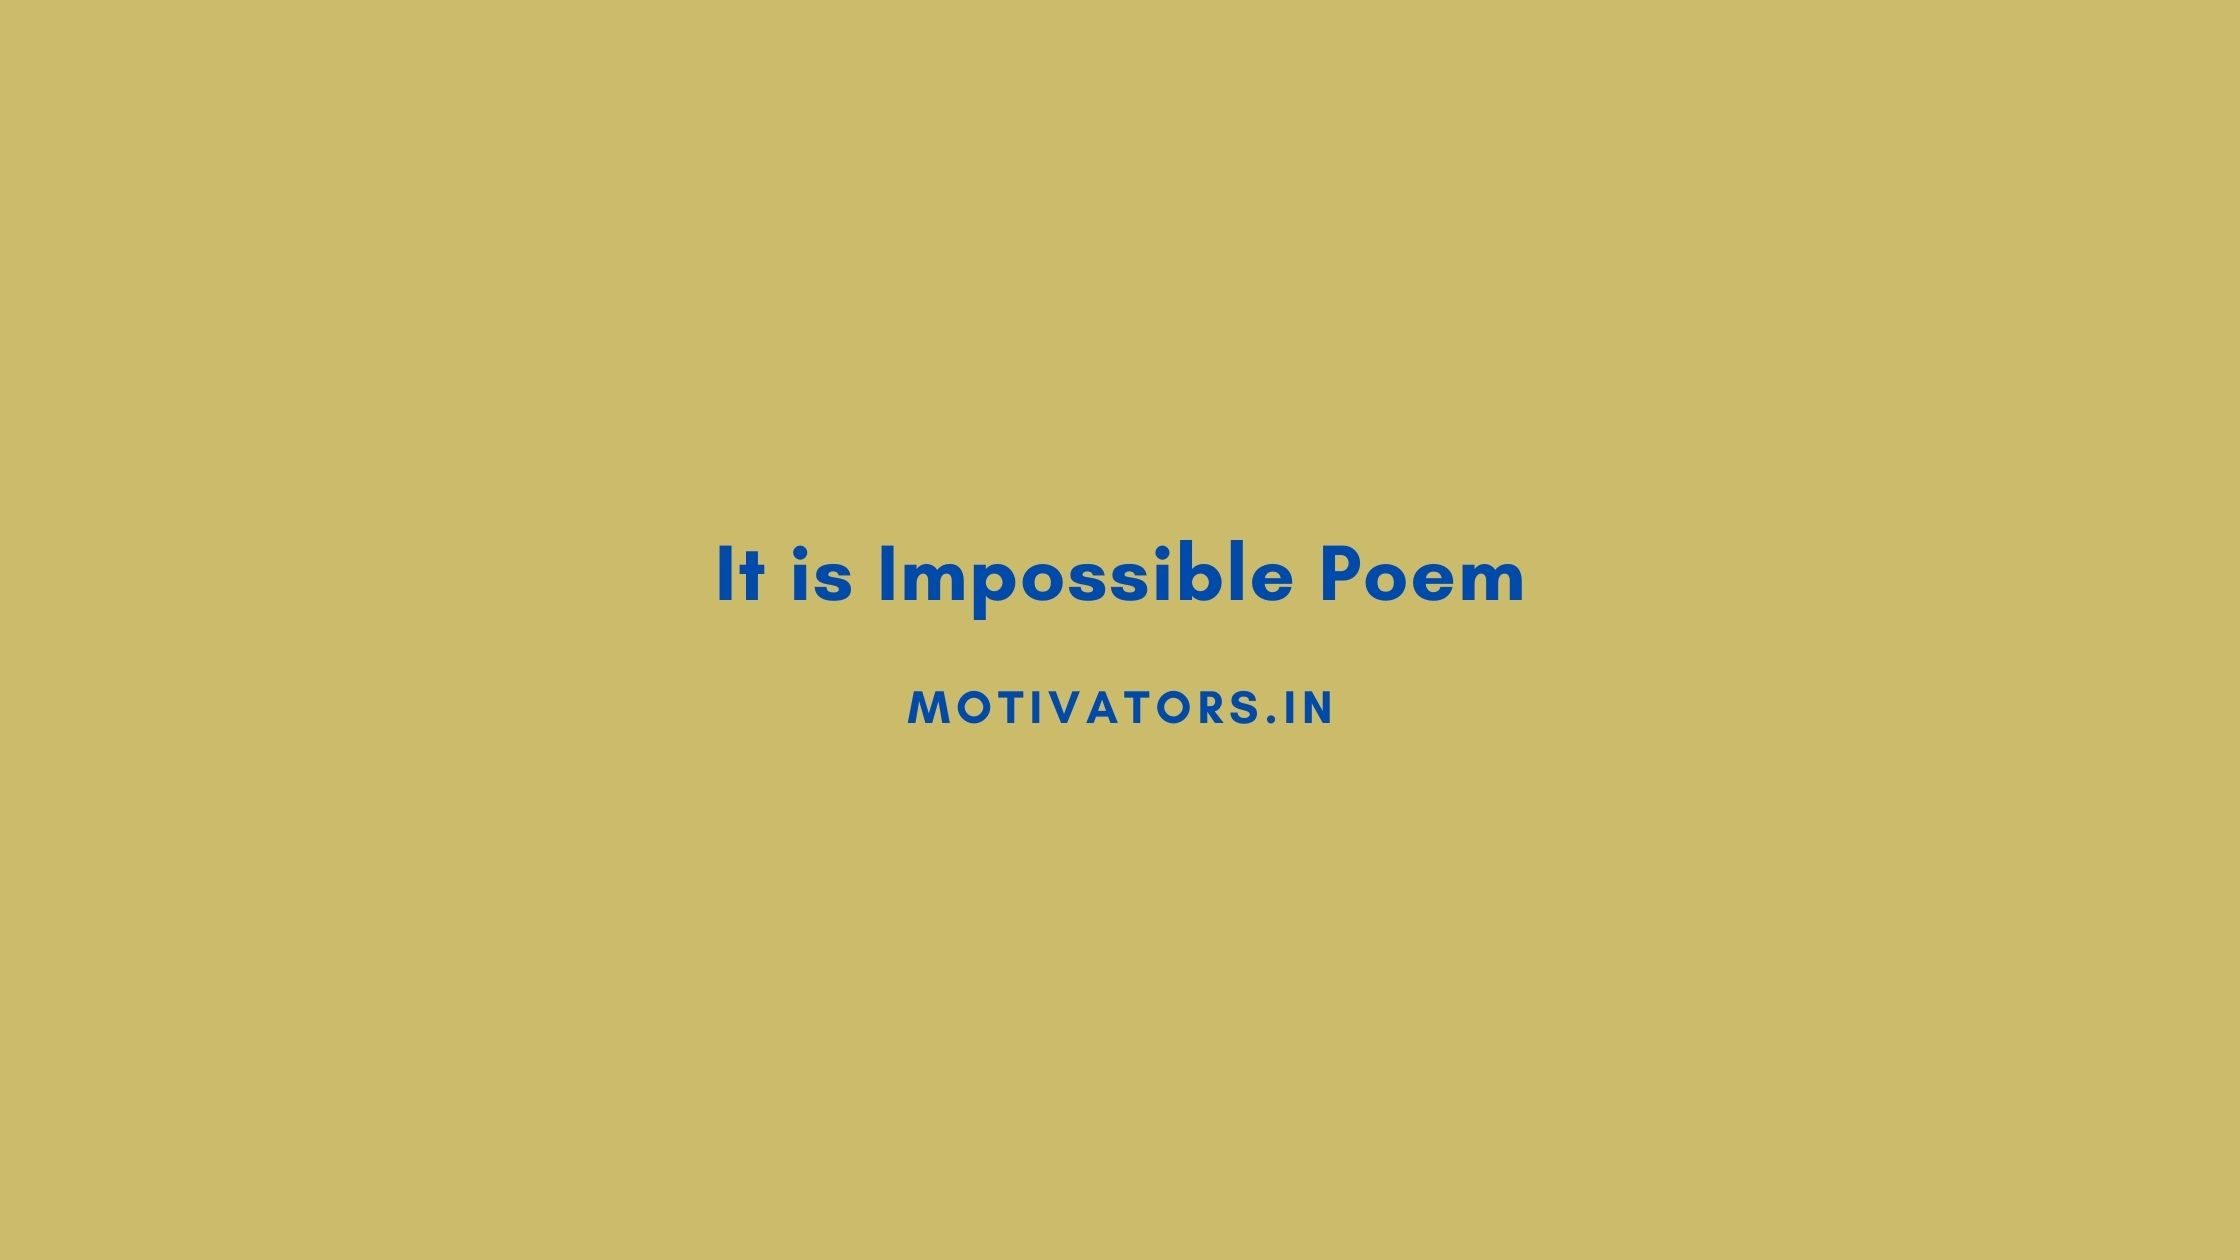 It is Impossible Poem